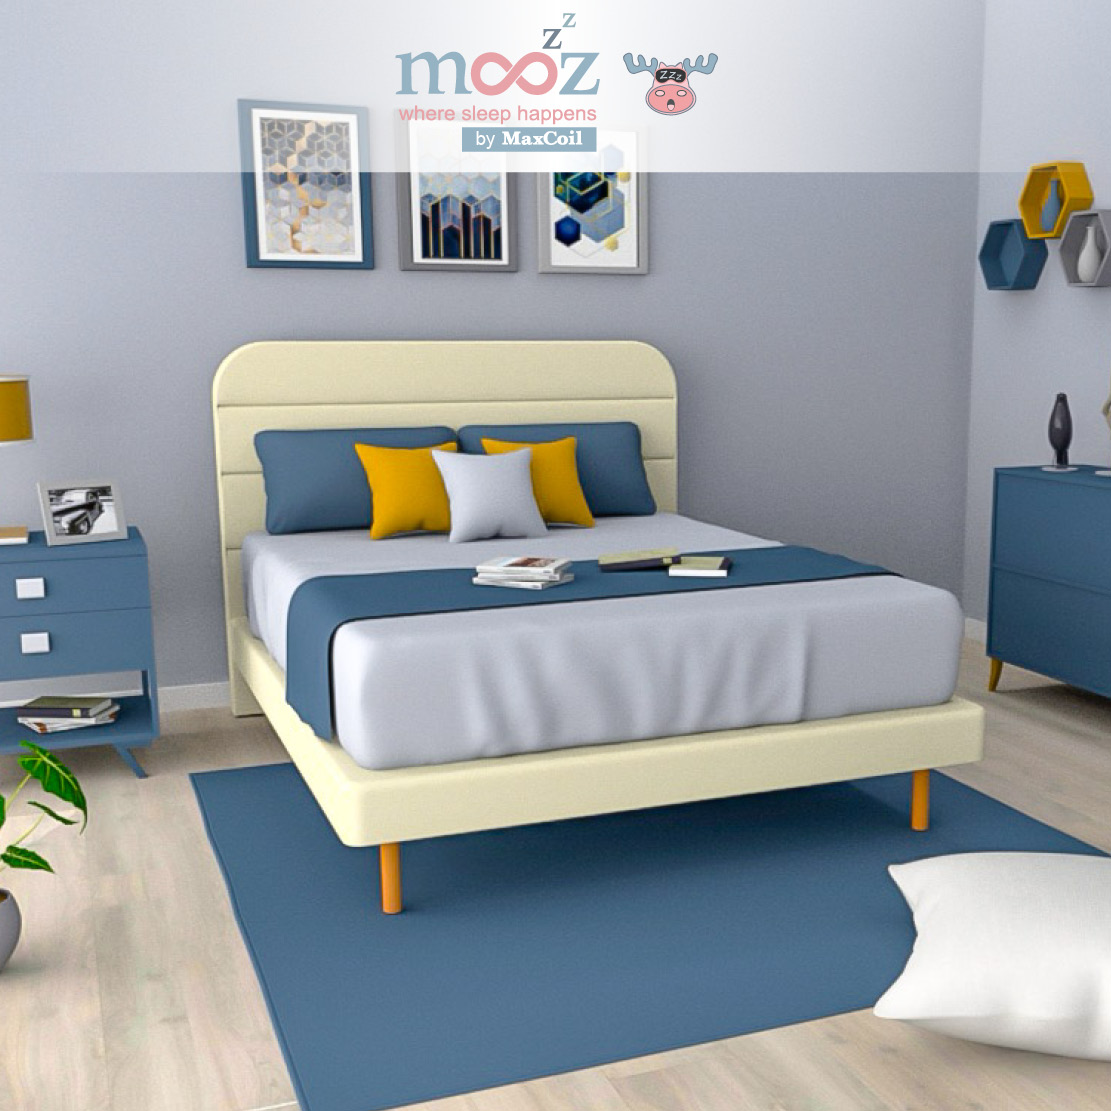 mooZzz Jory 5inch Divan (with Anitra Headboard) | Available in Single, Super Single, Queen and King Sizes